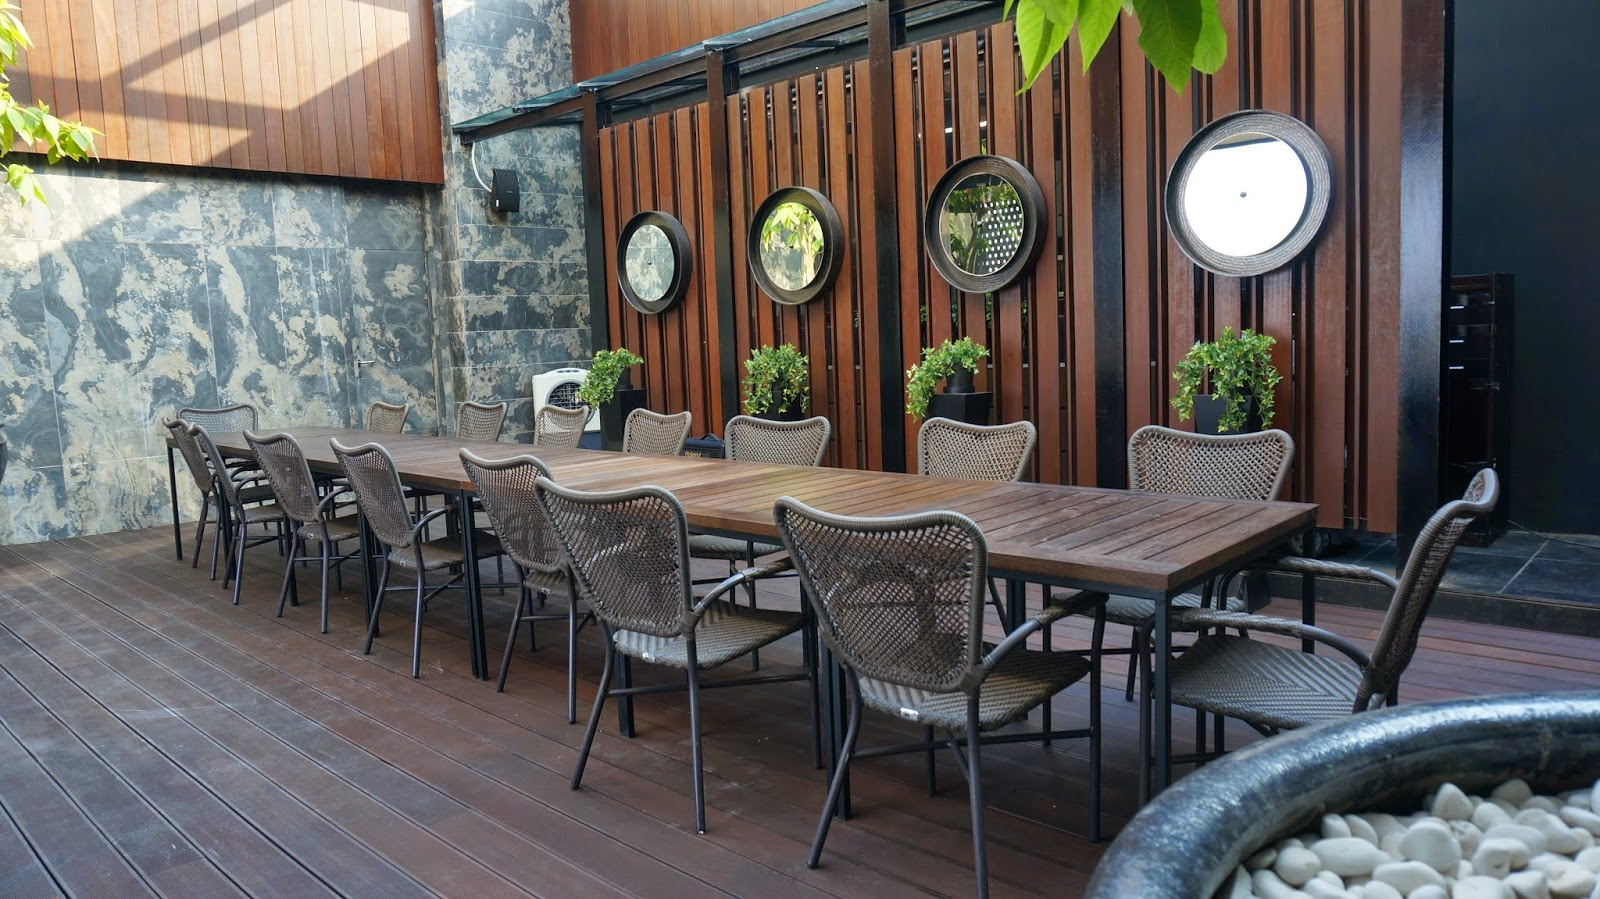 overall sky 36 restaurant is a nice place i wonder how the foods taste like if you had been here please do comment and recommend me some yummy treats - Restaurant Dining Room Furniture